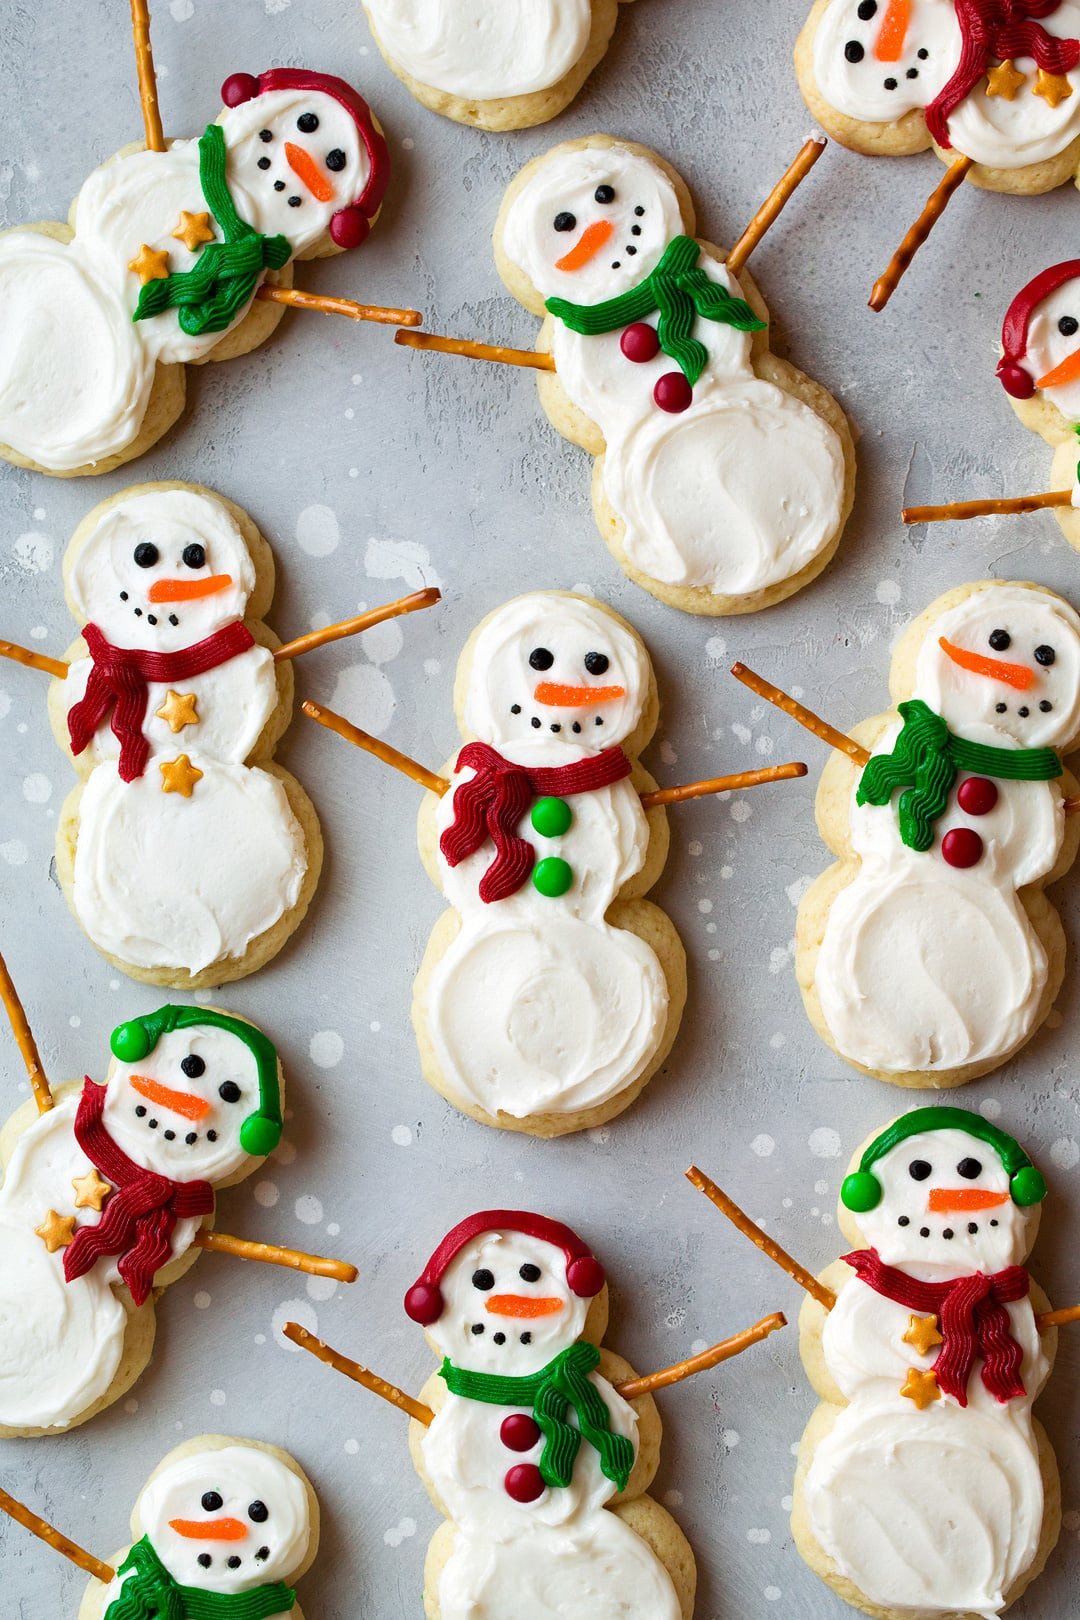 Snowman Christmas Cookies  Lofthouse Style Snowman Sugar Cookies Cooking Classy